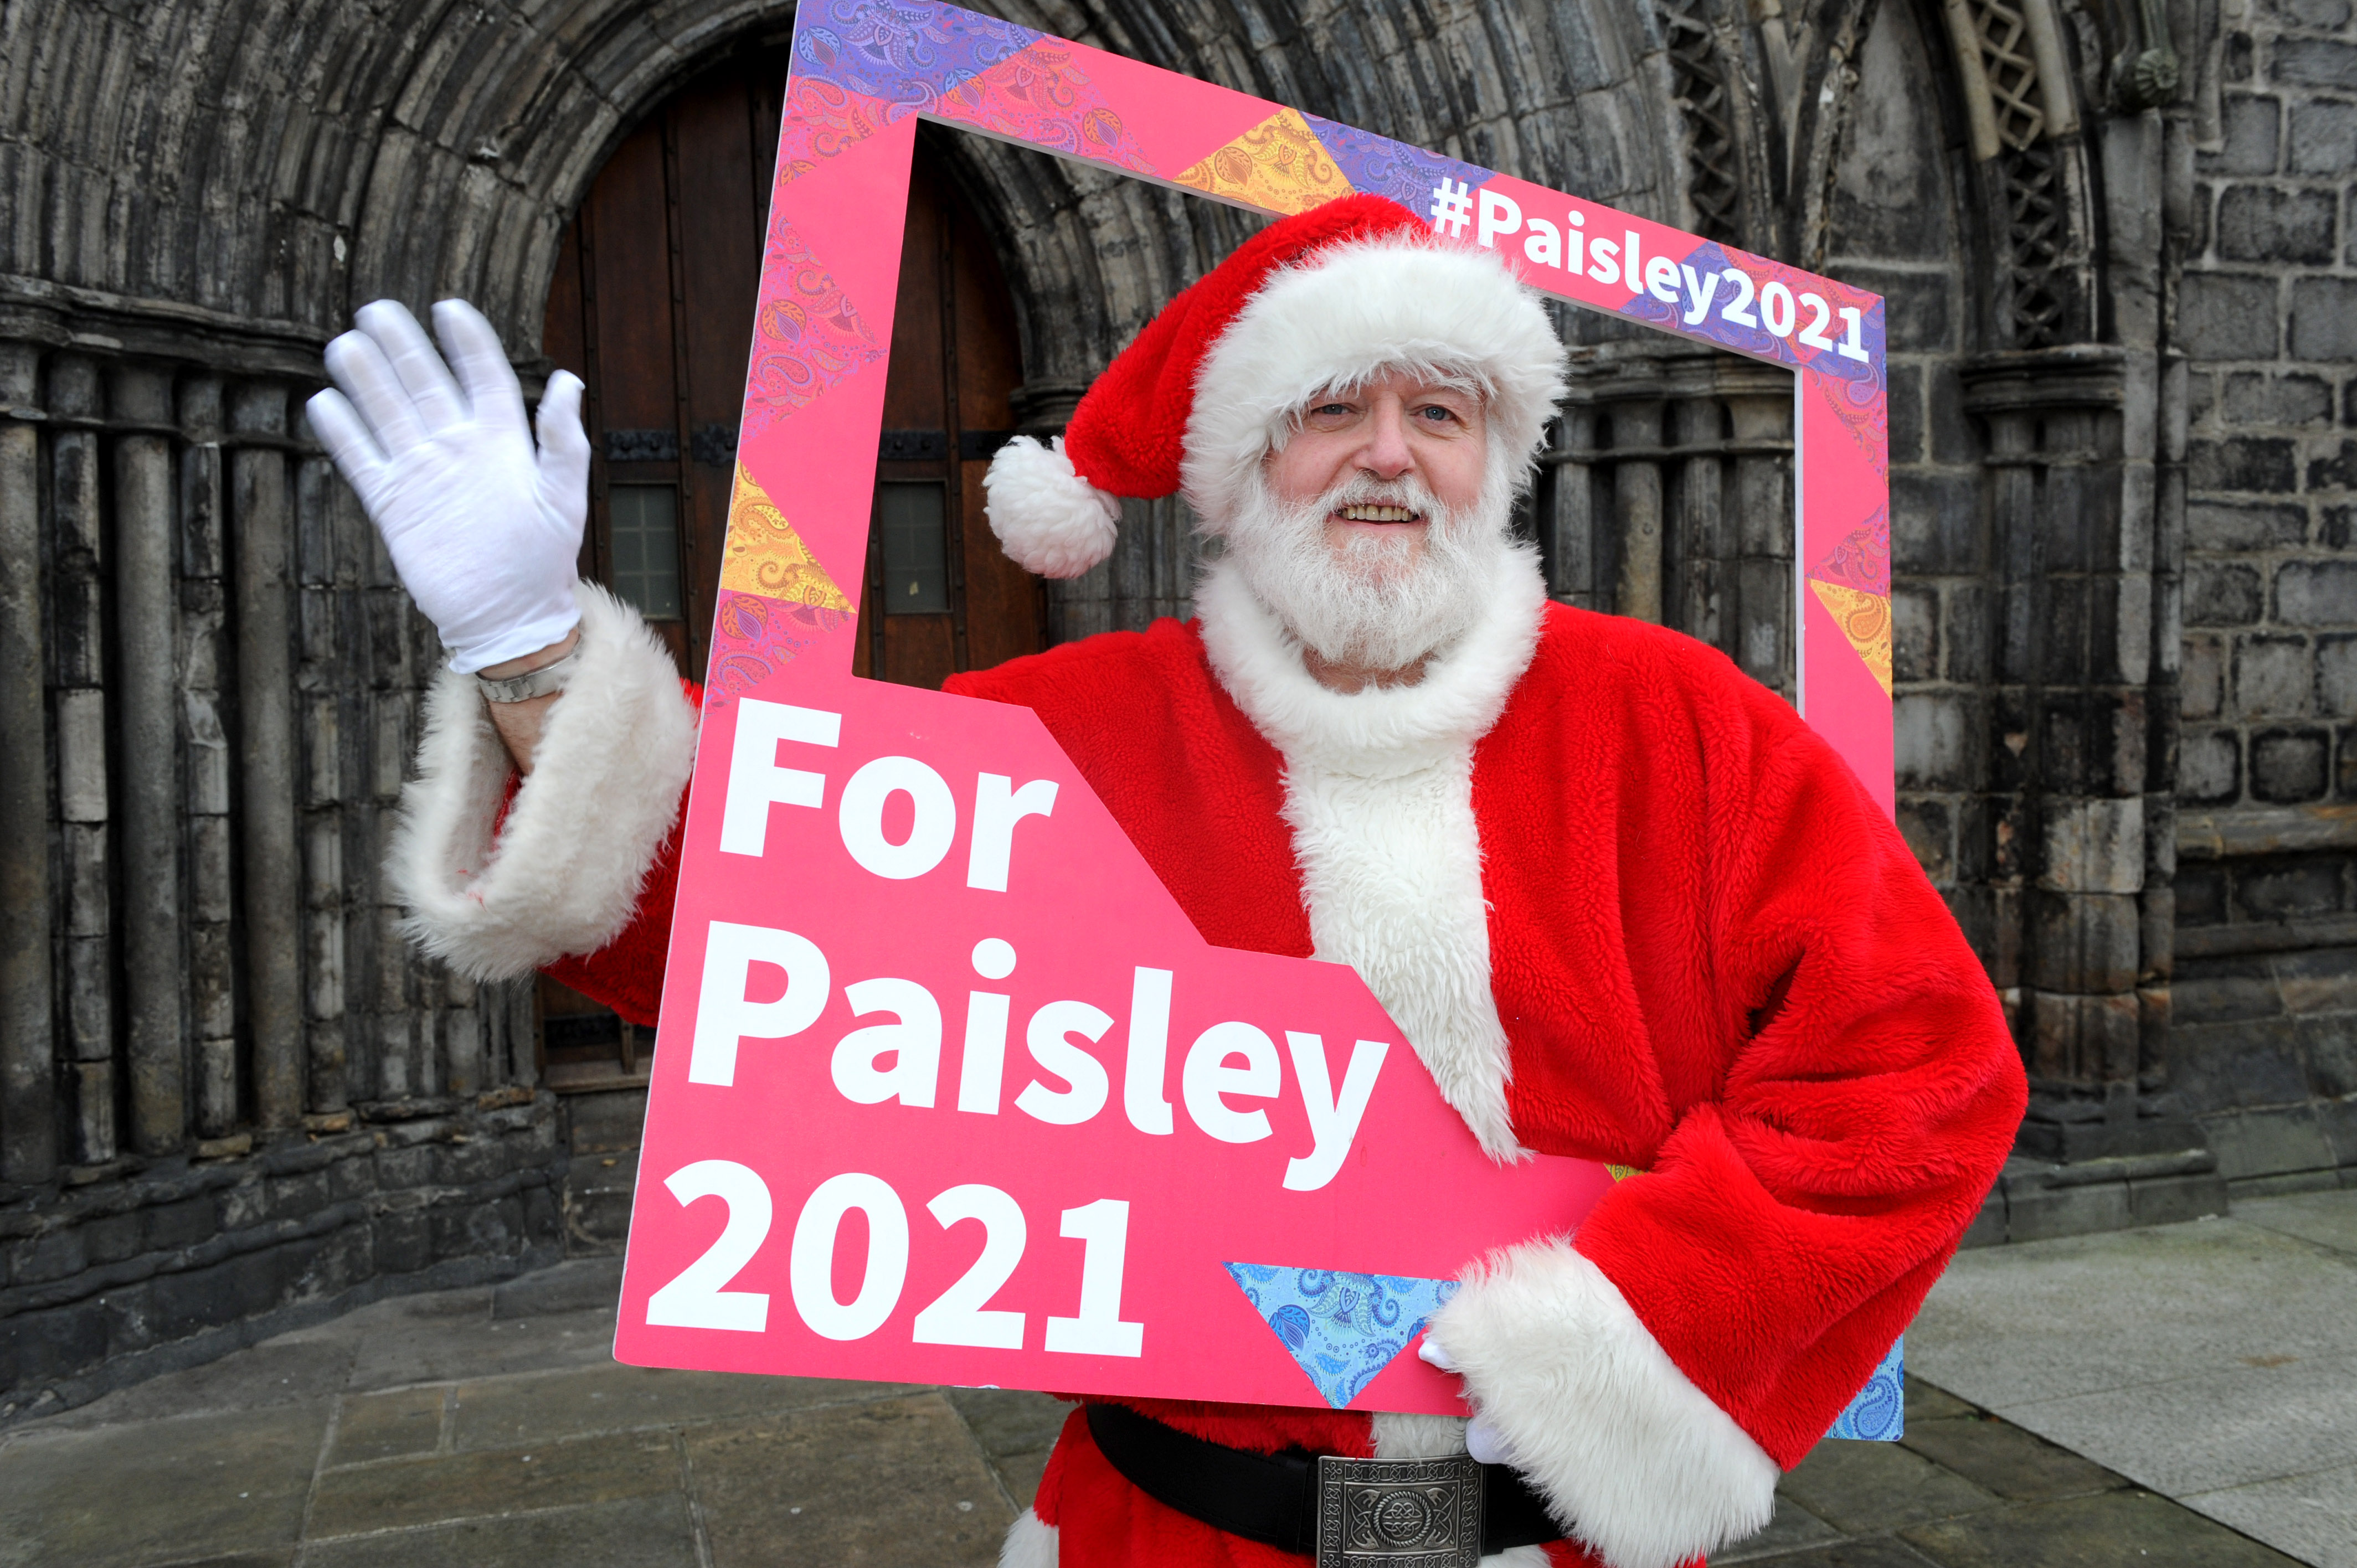 Santa backs the bid for Paisley 2021